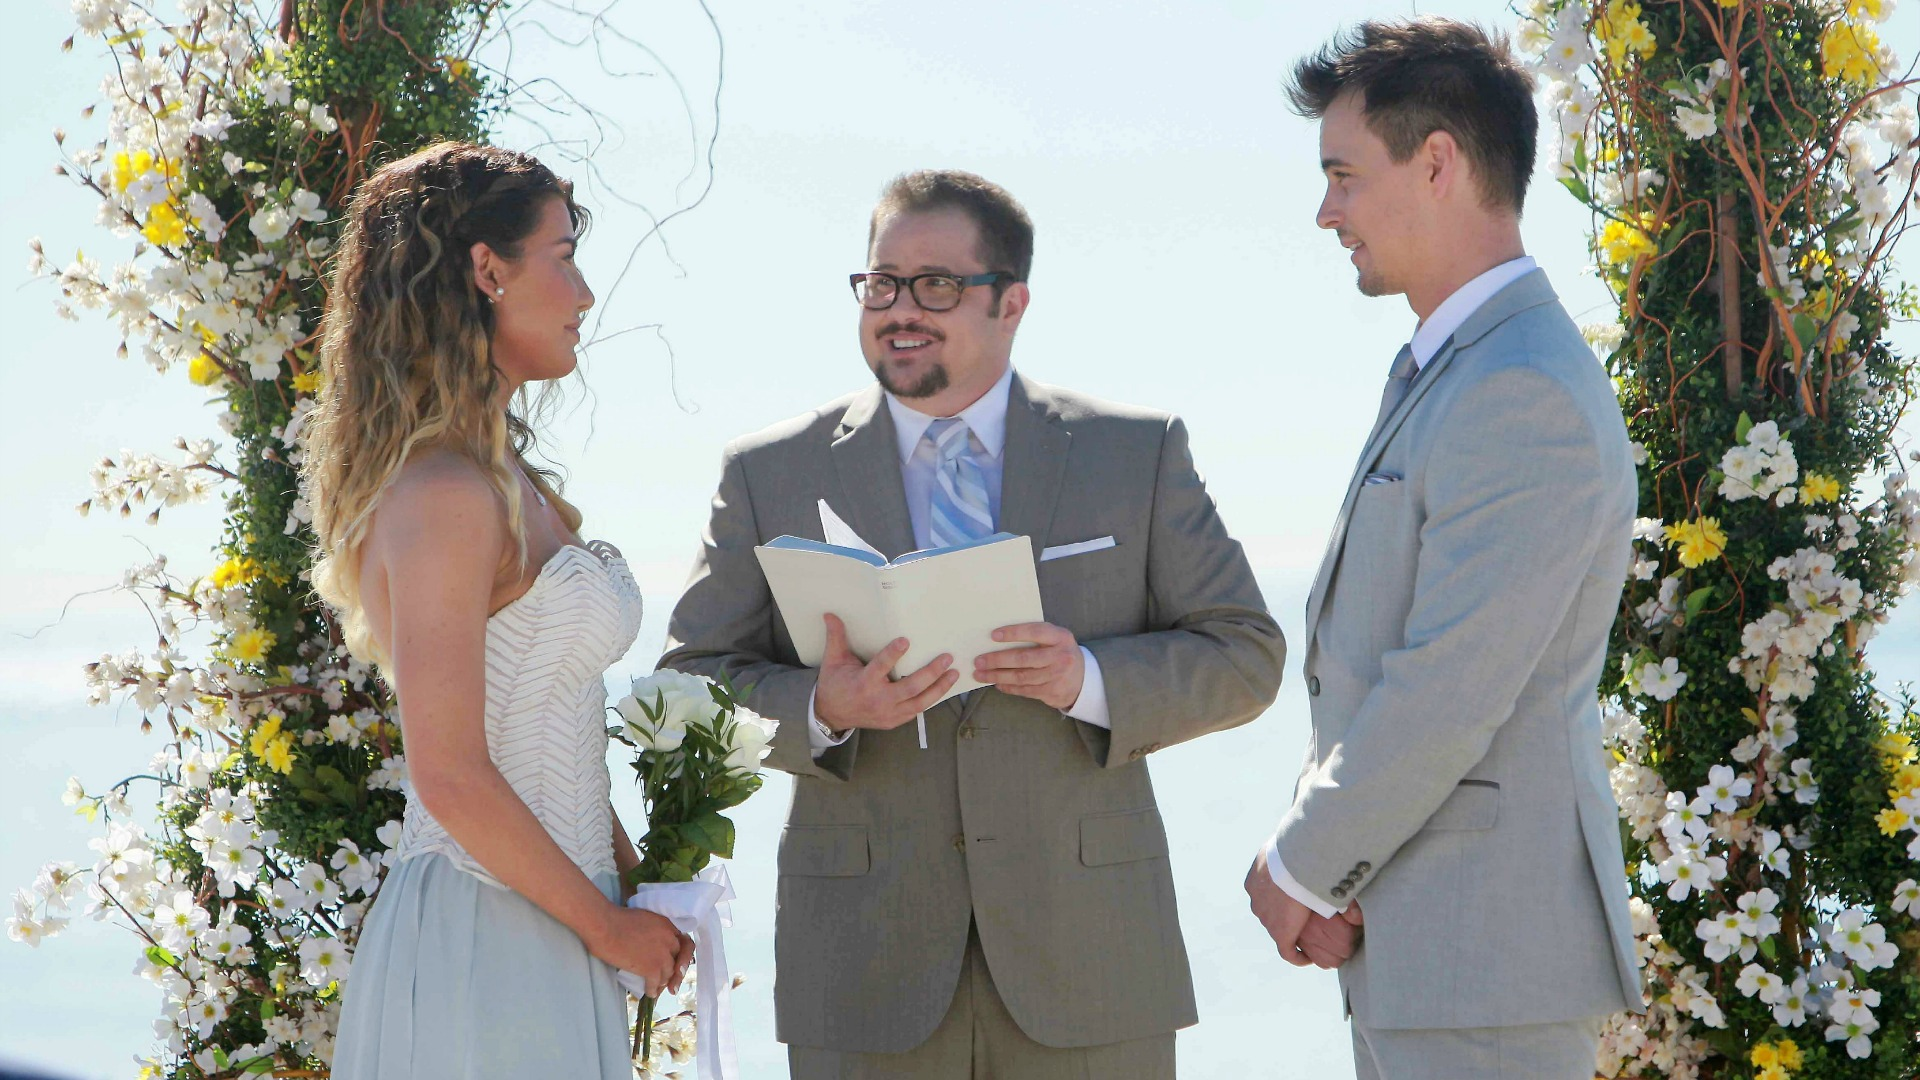 Wyatt lovingly looks at his bride.